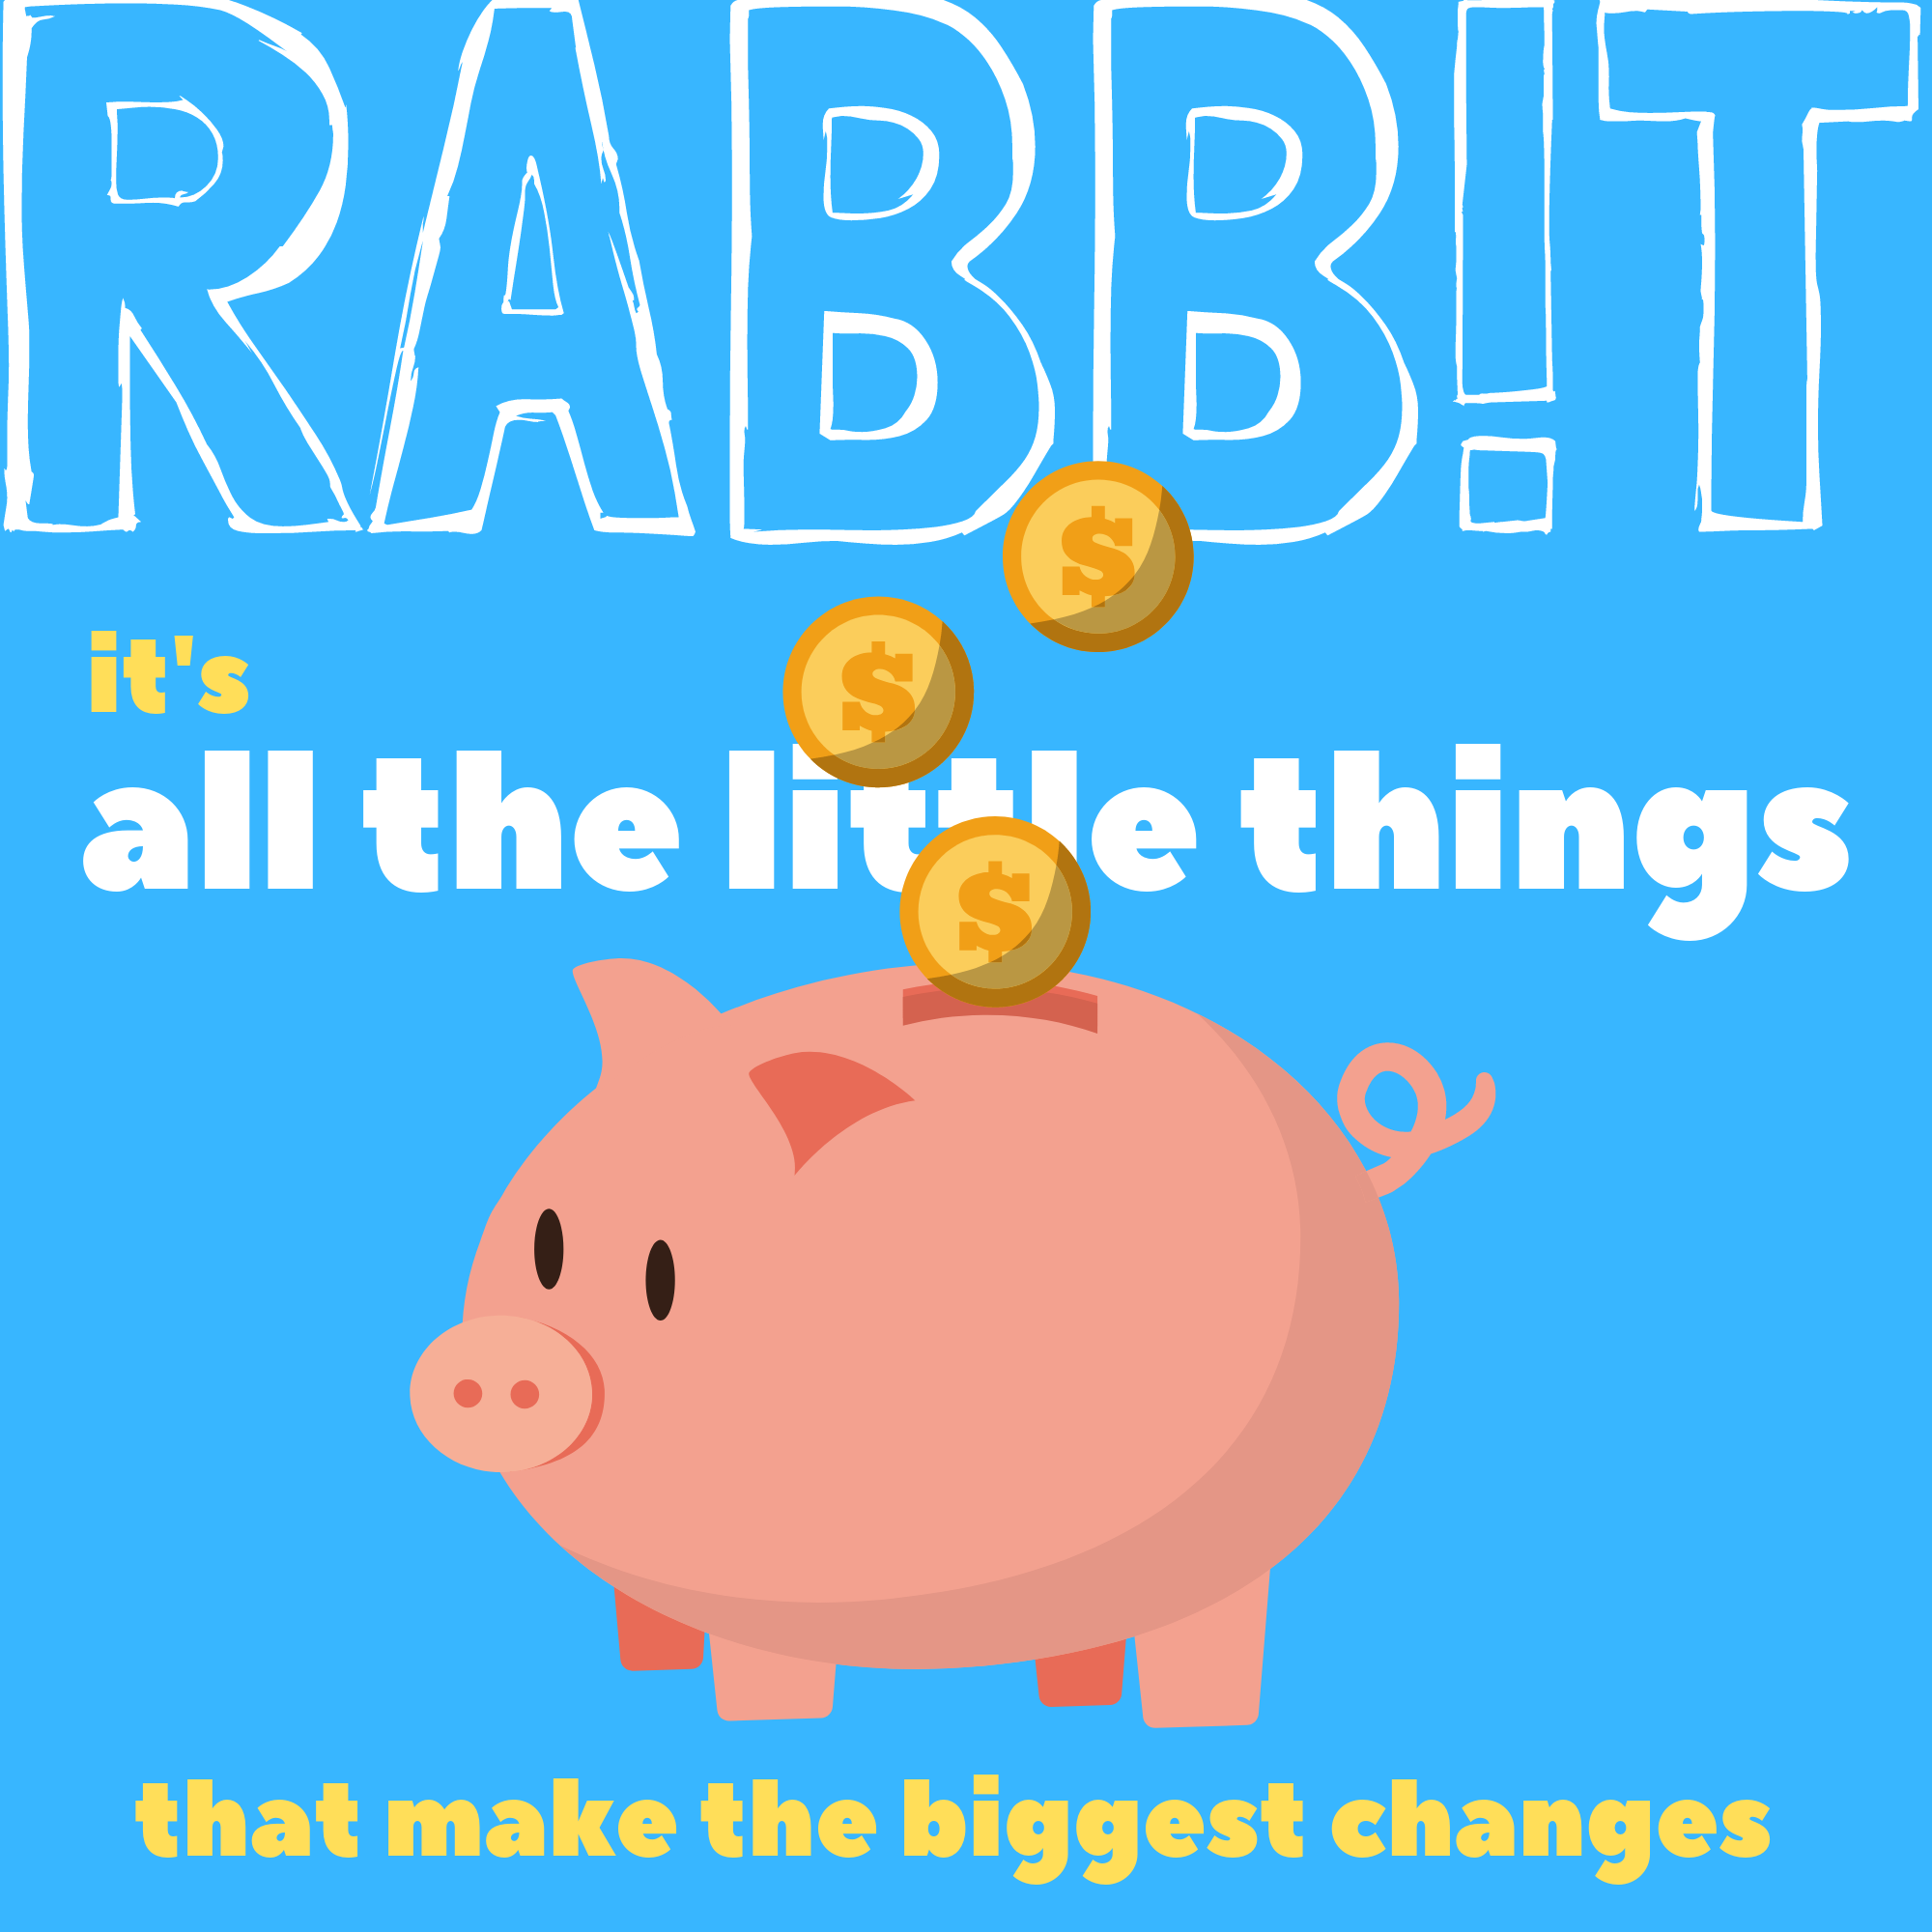 Rabbit_All The Little Things.png